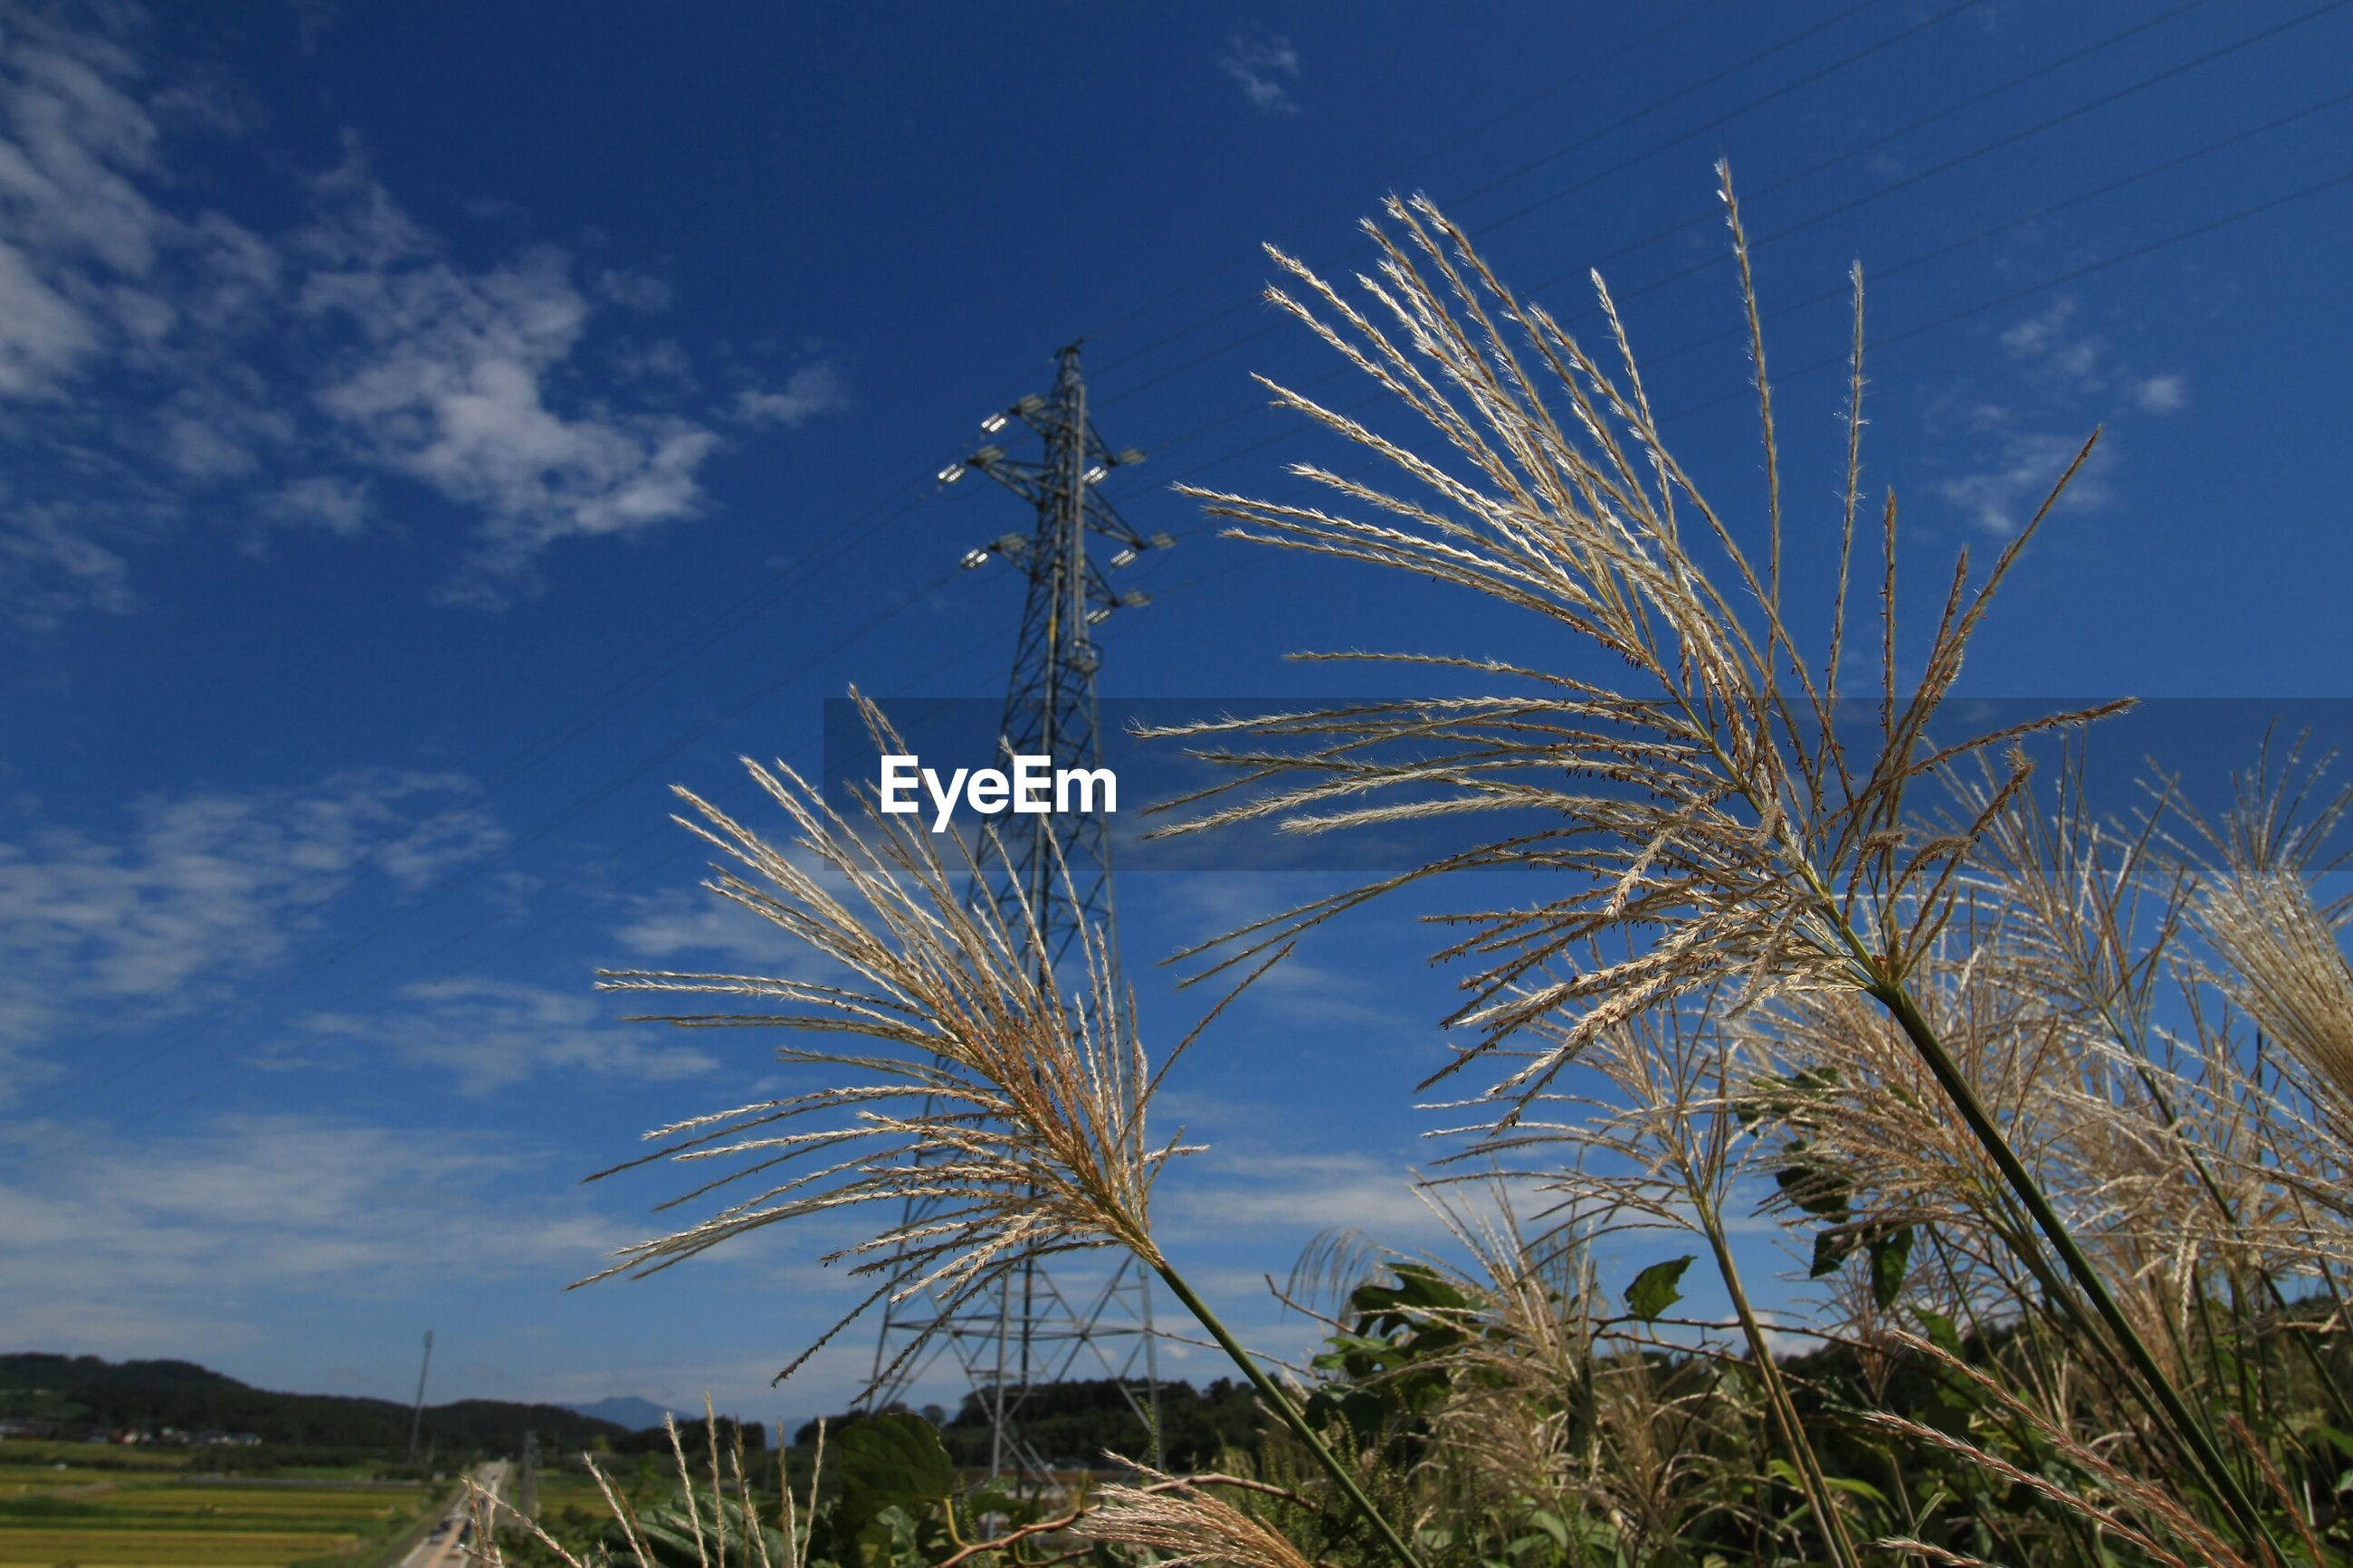 Low angle view of plants and electricity pylons against blue sky